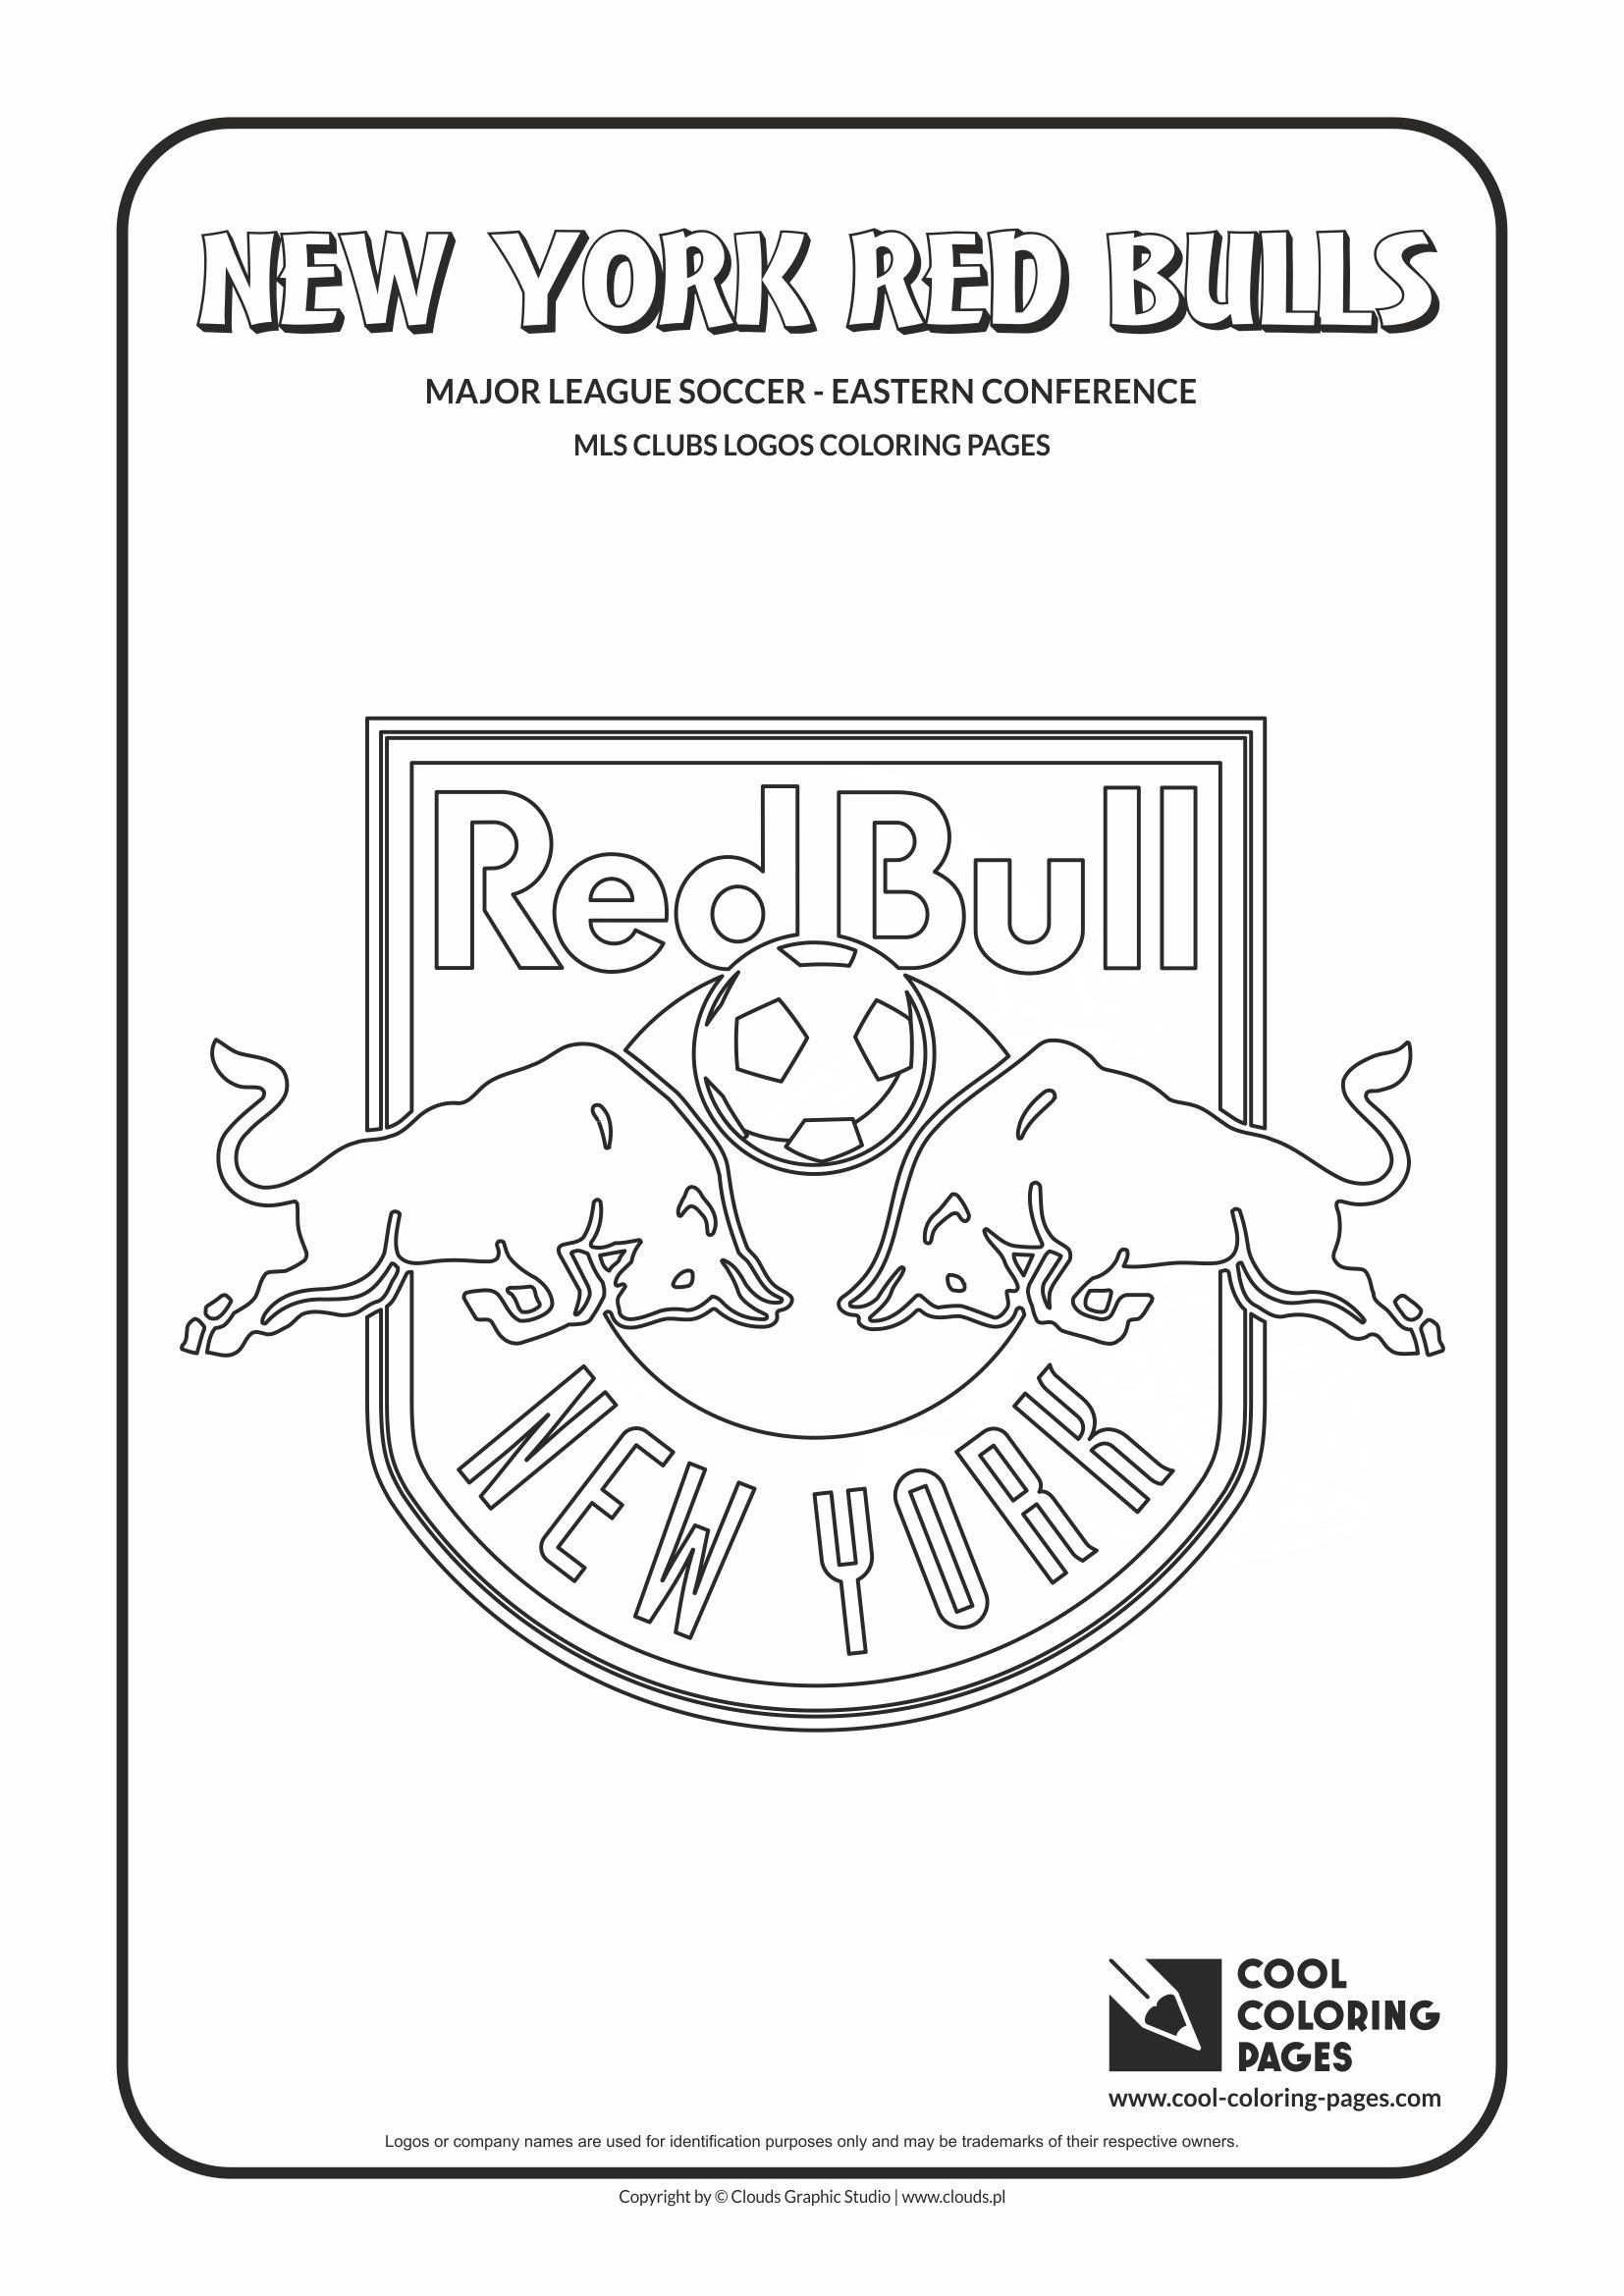 Cool Coloring Pages - Major League Soccer Logos - Eastern Conference / New York Red Bulls logo / Coloring page with New York Red Bulls logo